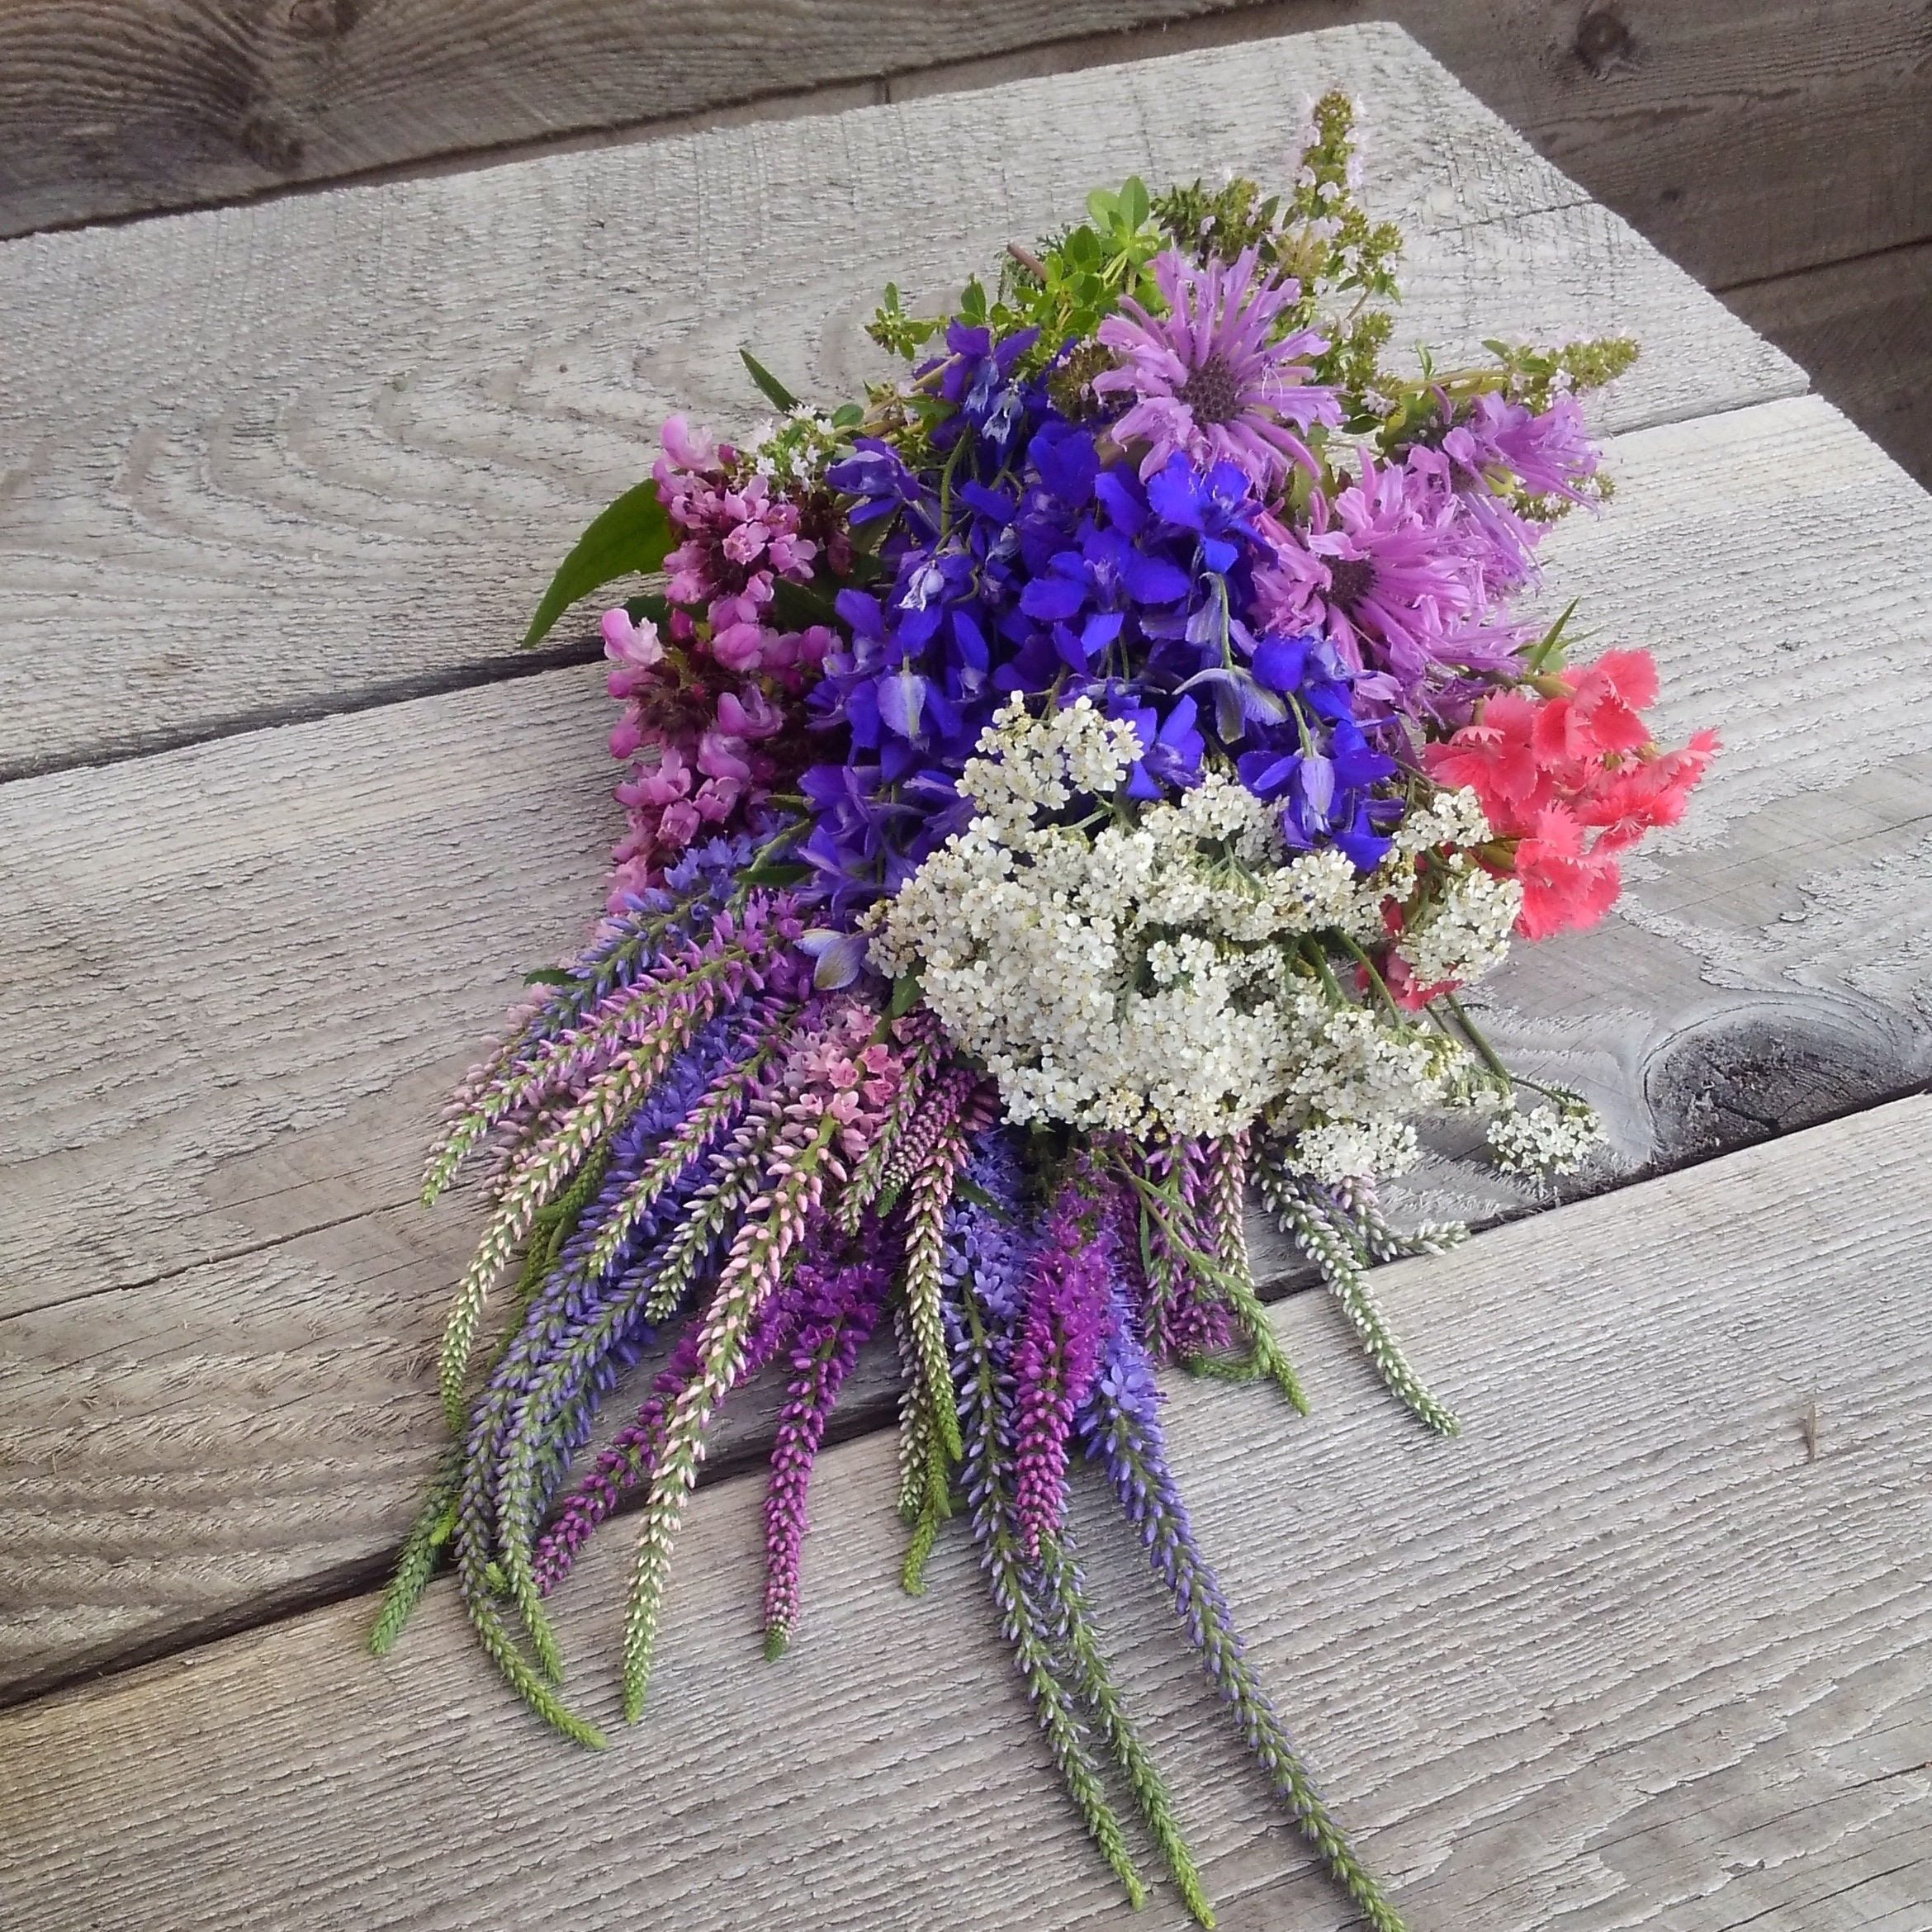 Dried Floral Bouquet Dried Fragrant Flowers Fragrant Flower Etsy